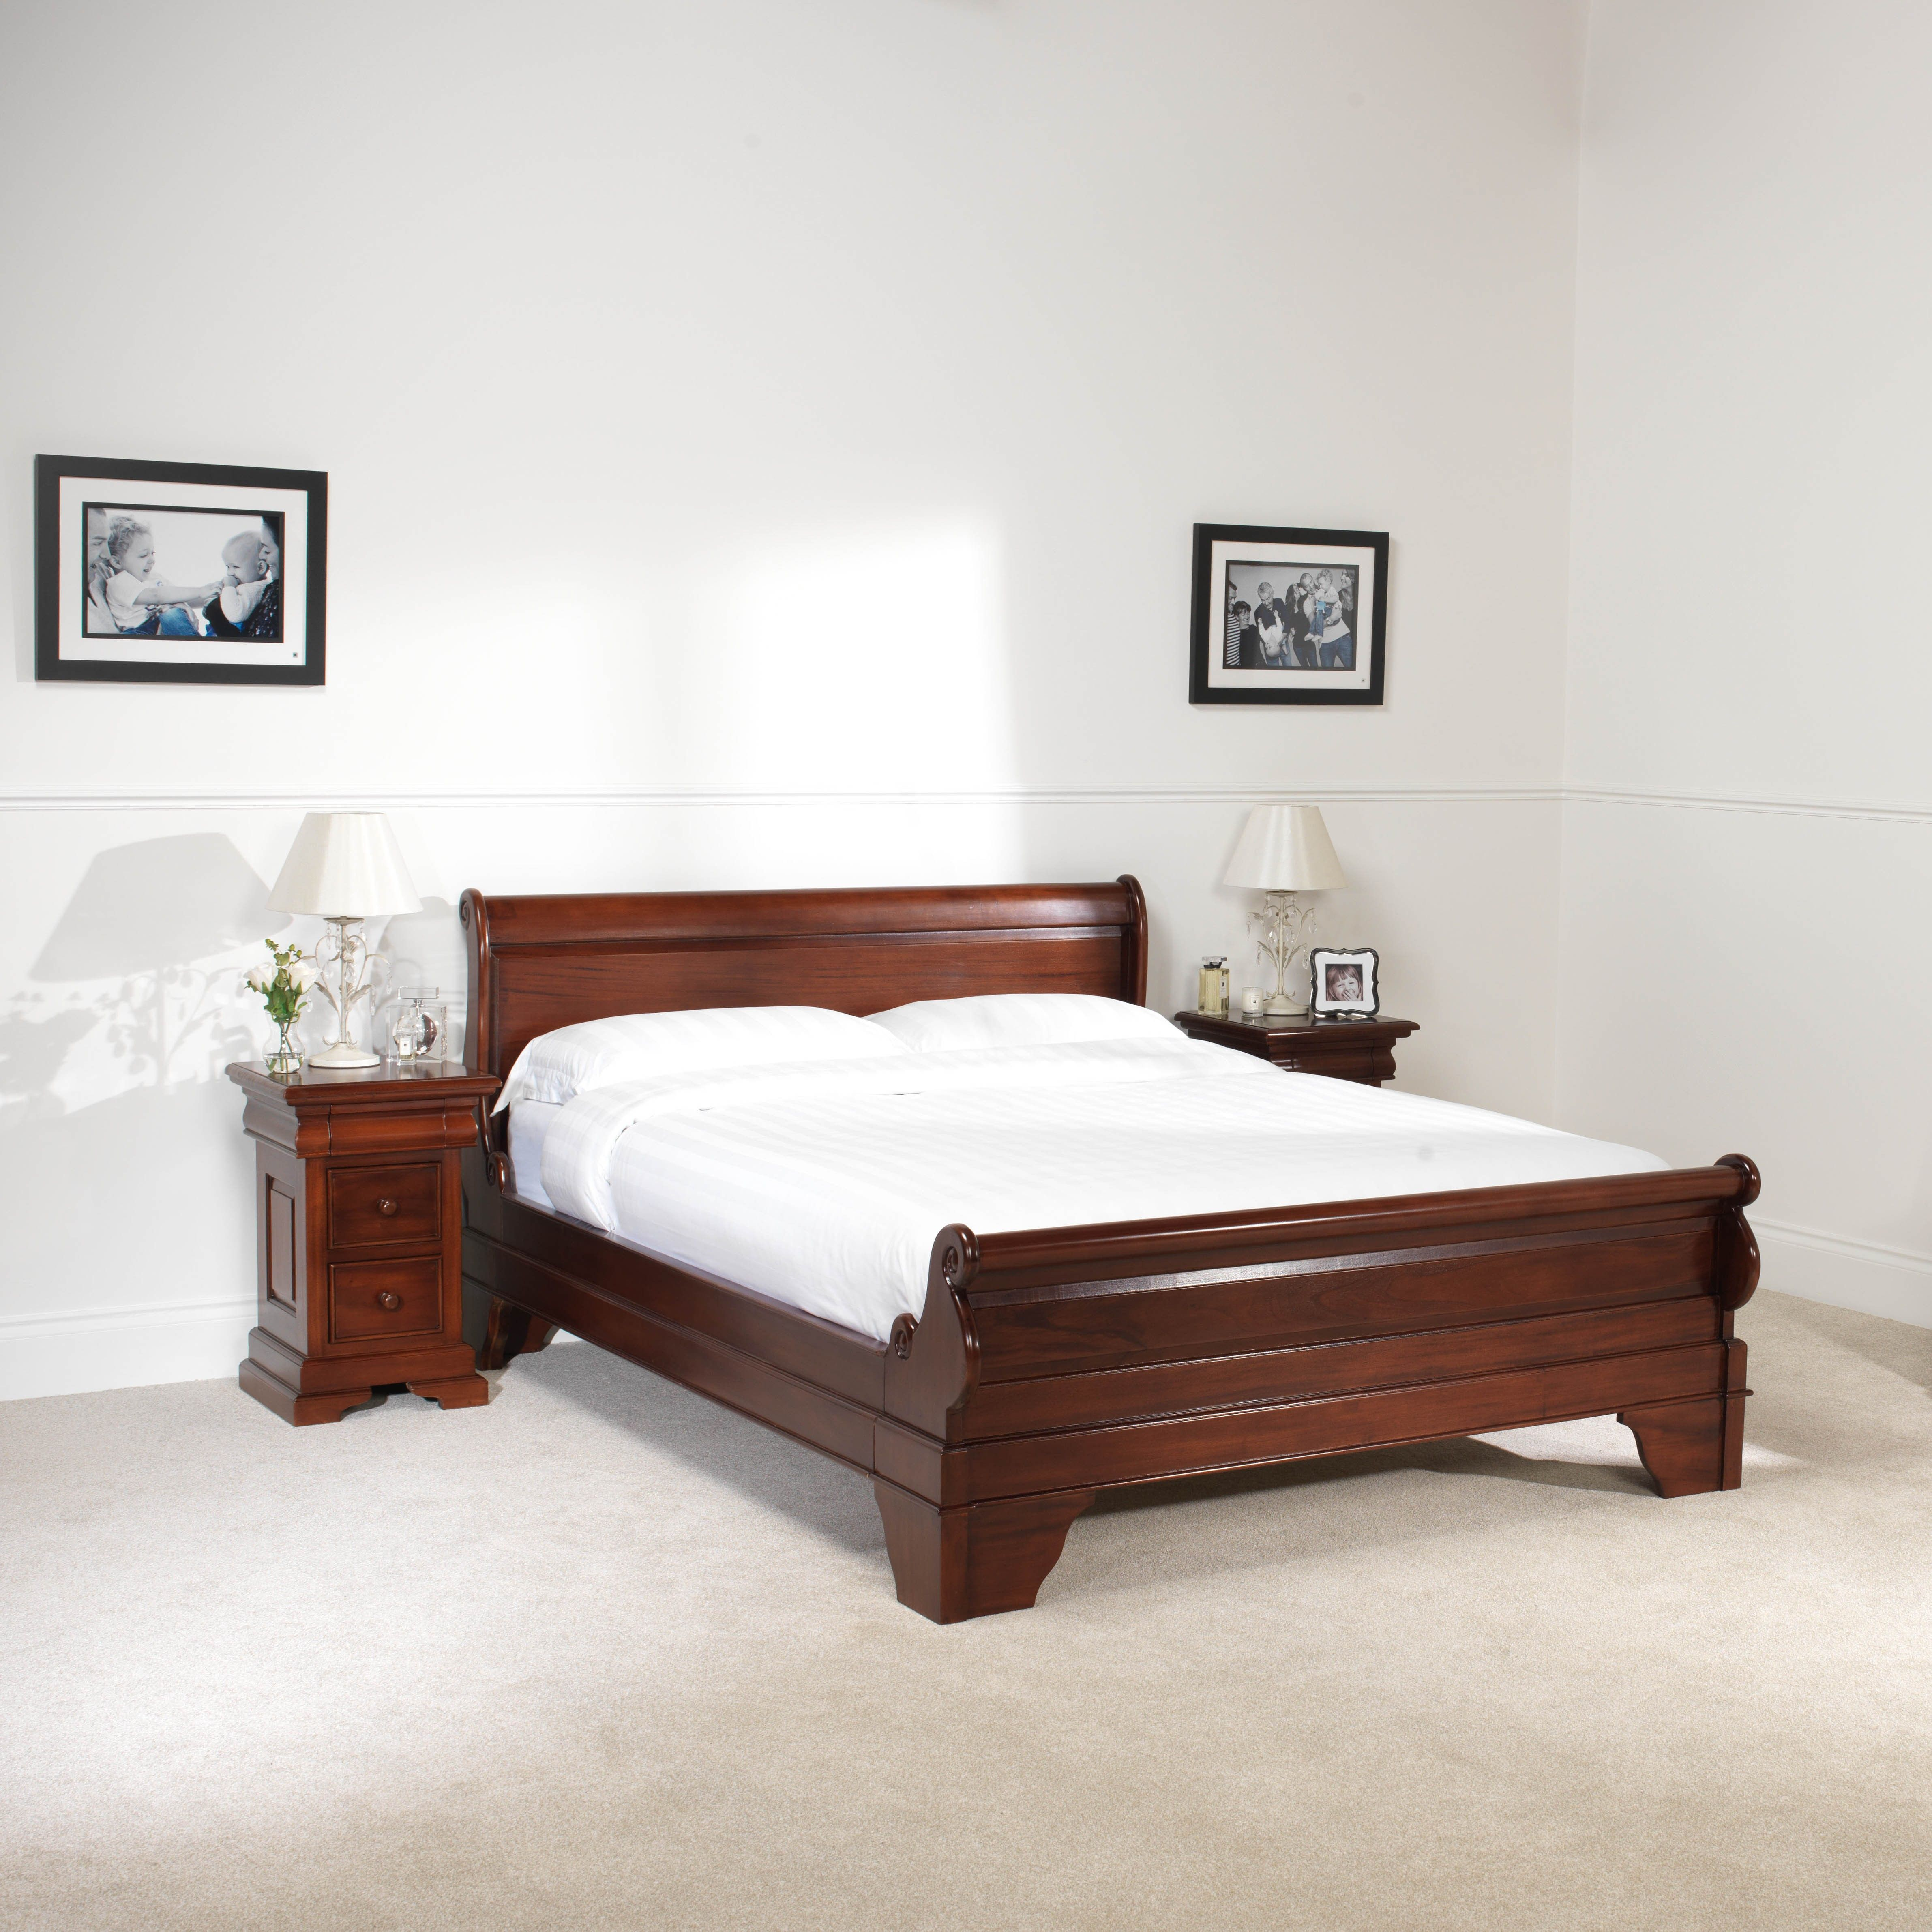 GB10M4 Mahogany Sleigh Bed Low Foot board Bedroom bed